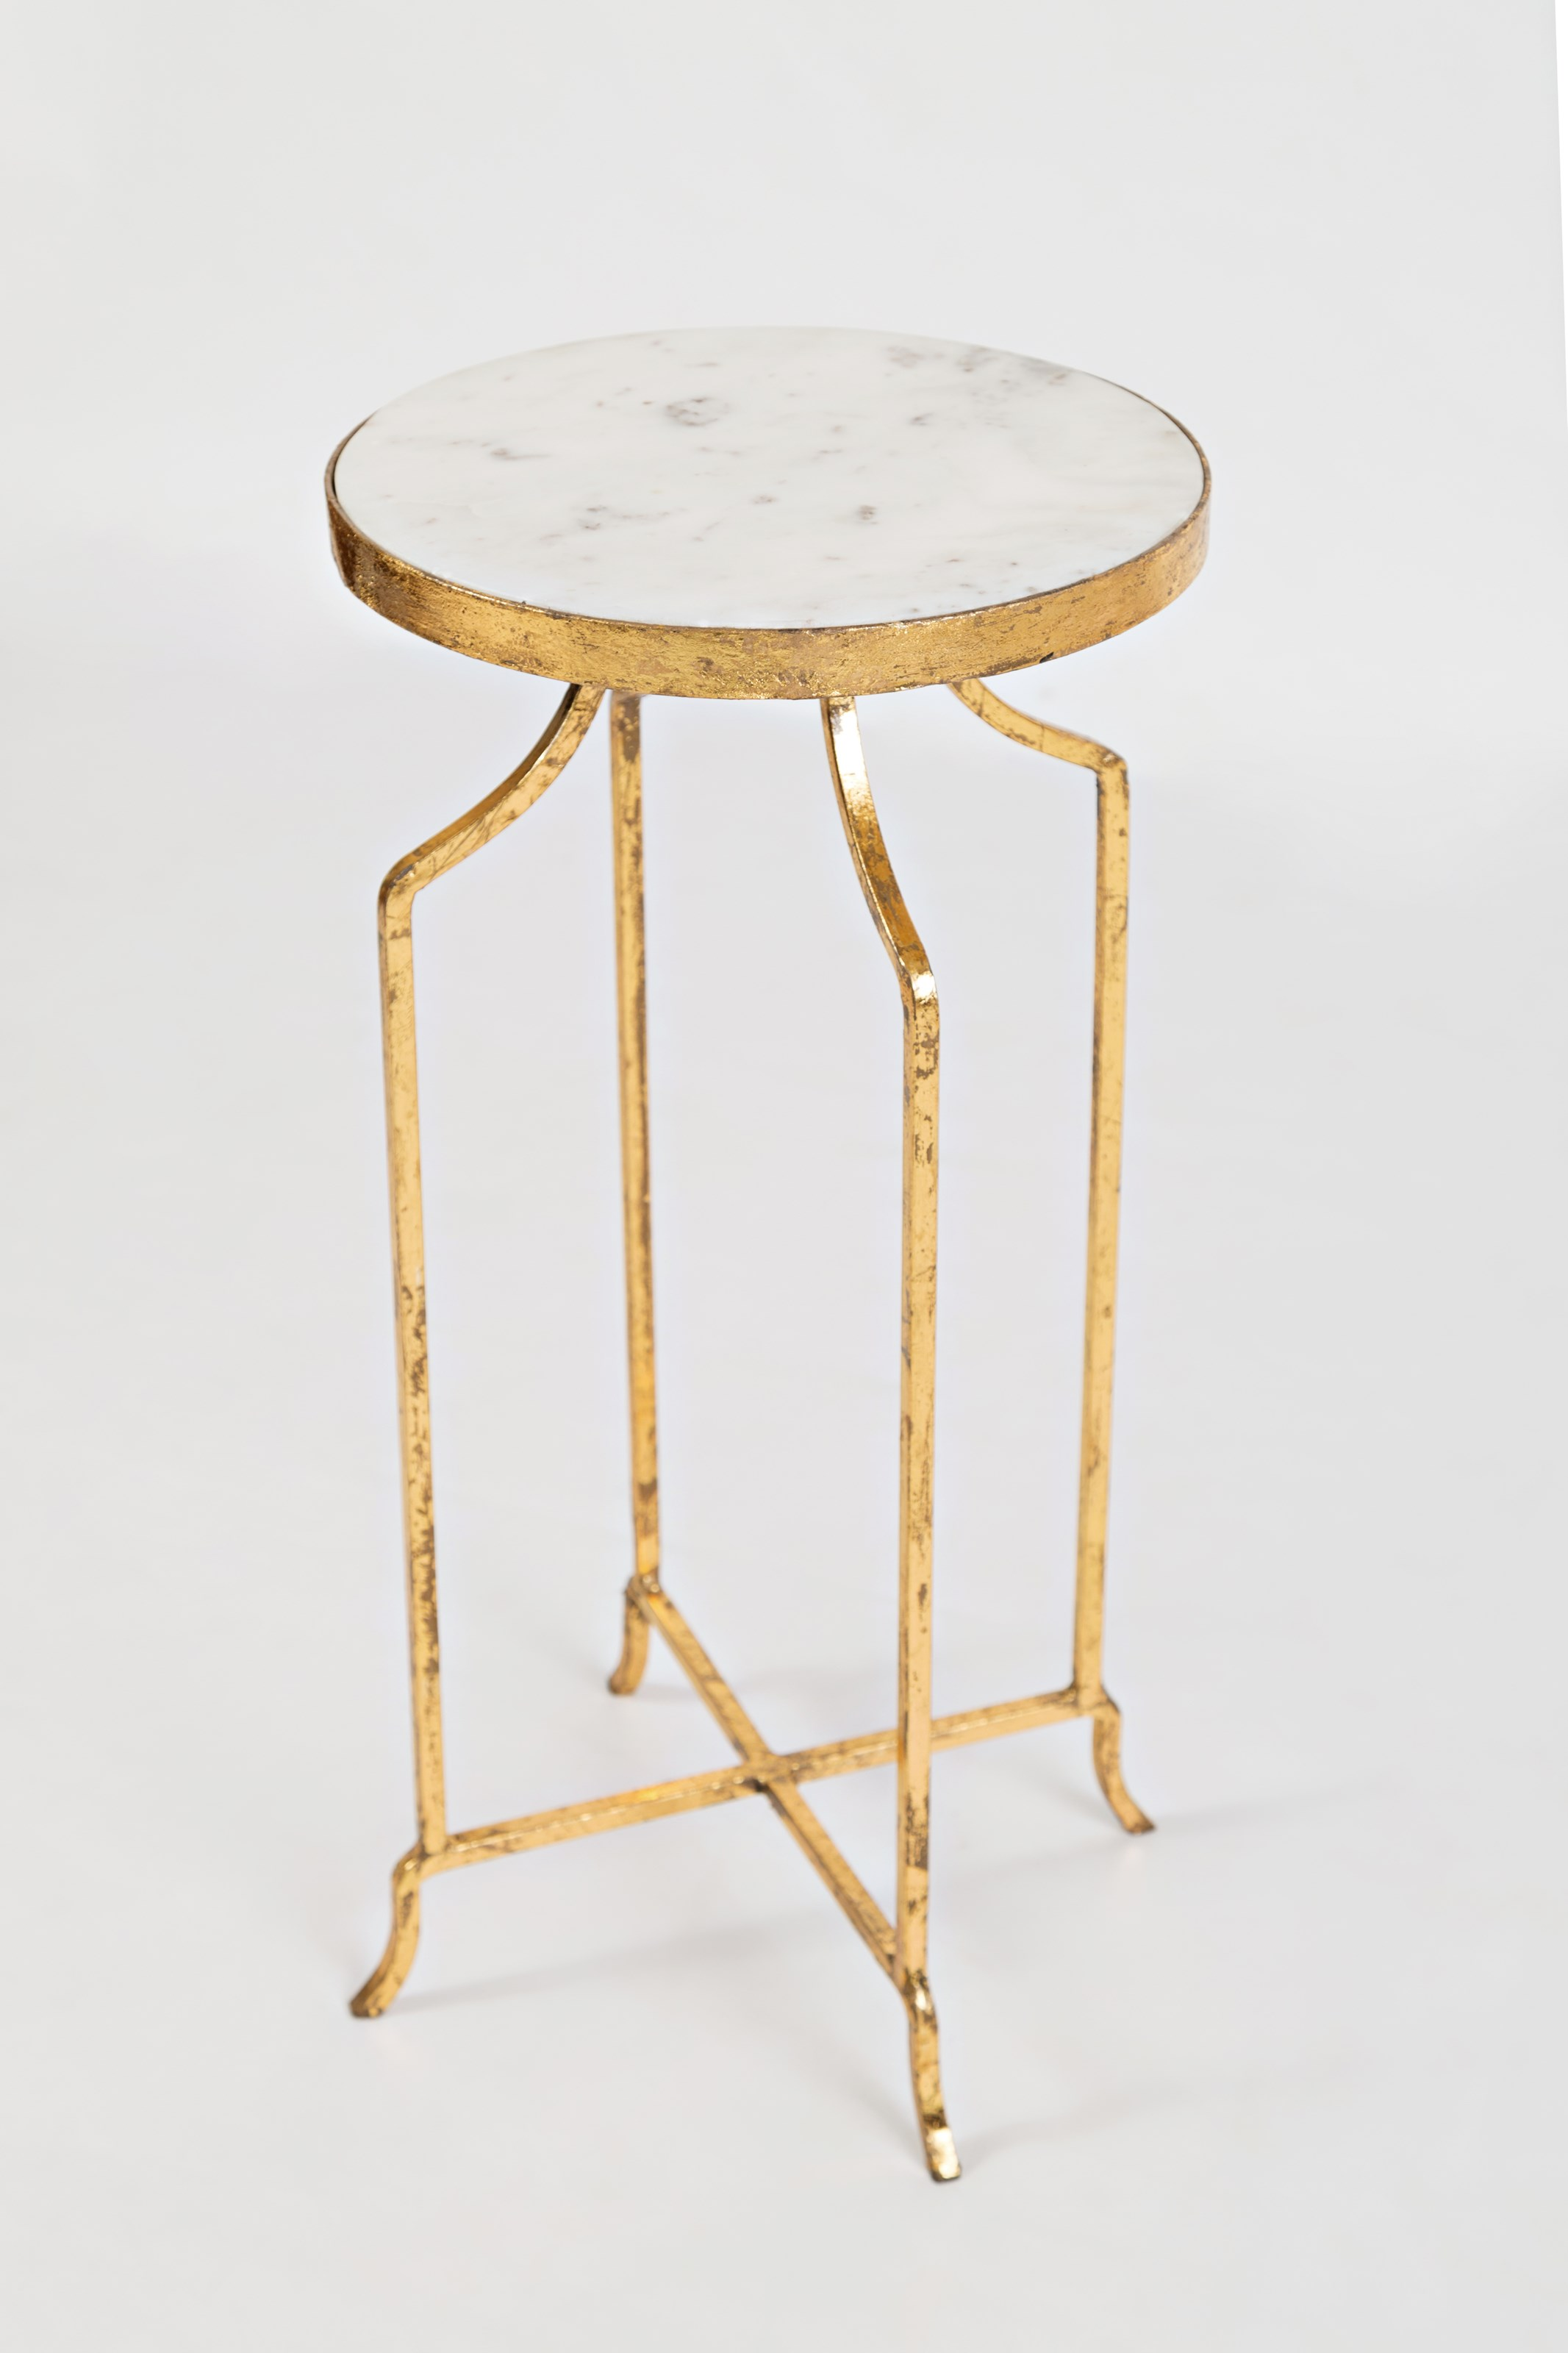 marble and golde round accent table jofran wolf gardiner products color global archive gold dining cover designs fur furniture cocktail linens square patio side ashley chicago